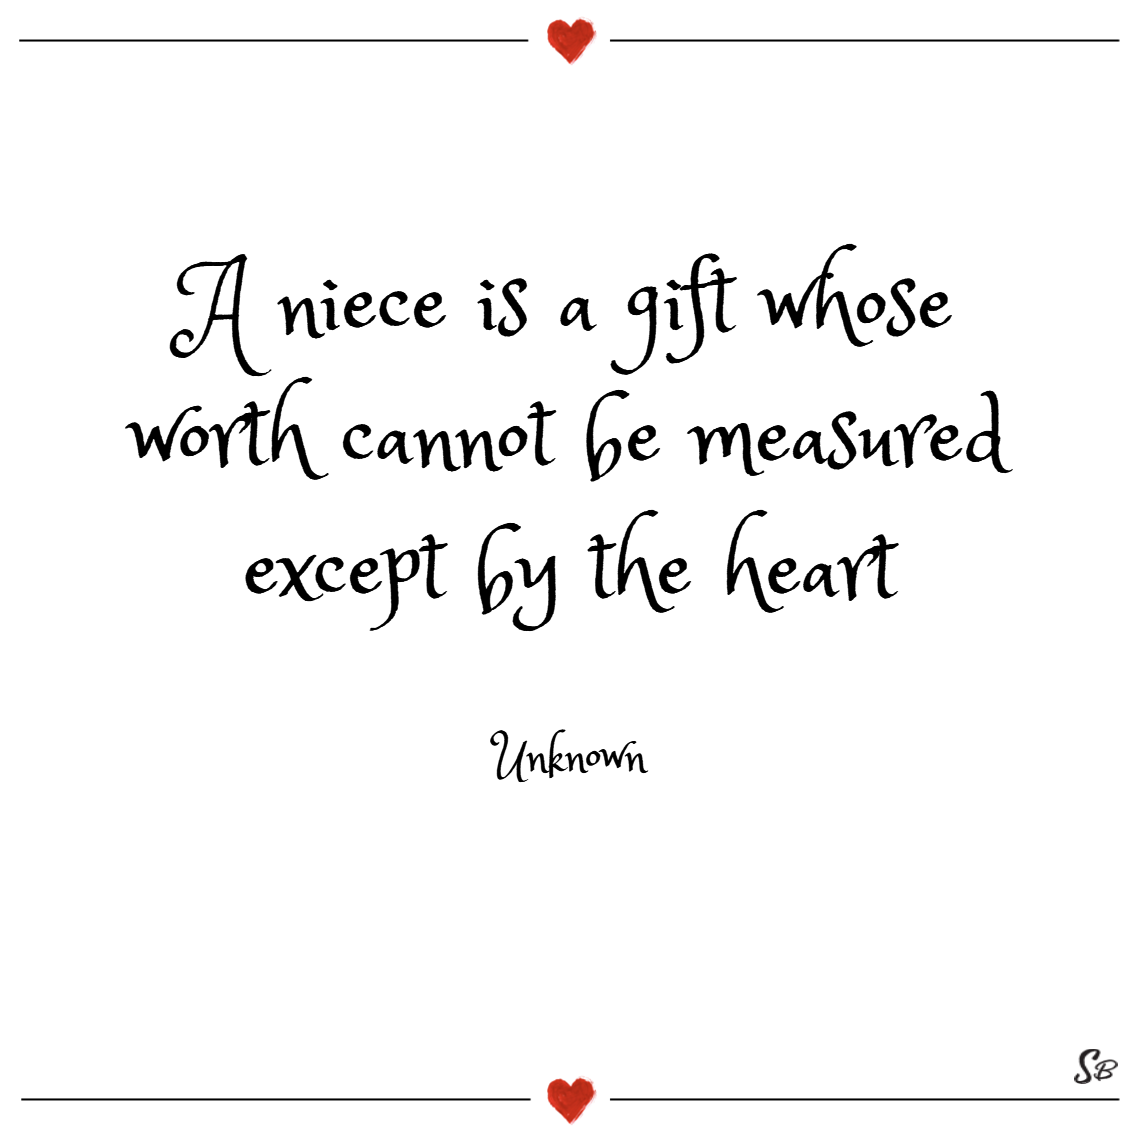 A niece is a gift whose worth cannot be measured except by the heart. – unknown niece quotes